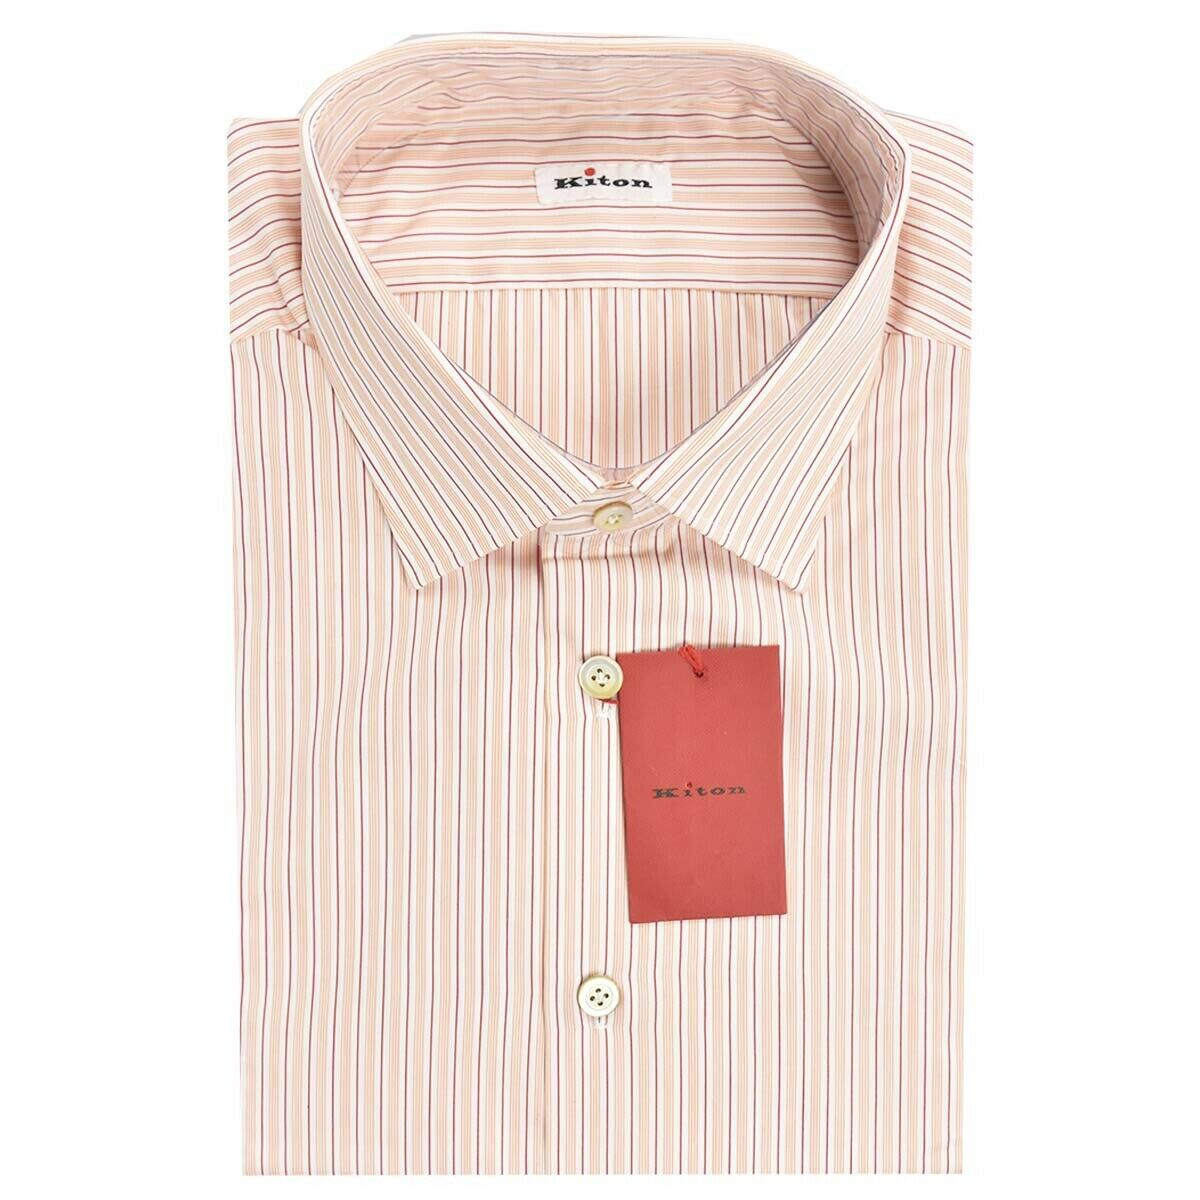 NEW KITON SHIRT 100% COTTON MOD. UCM 19H378